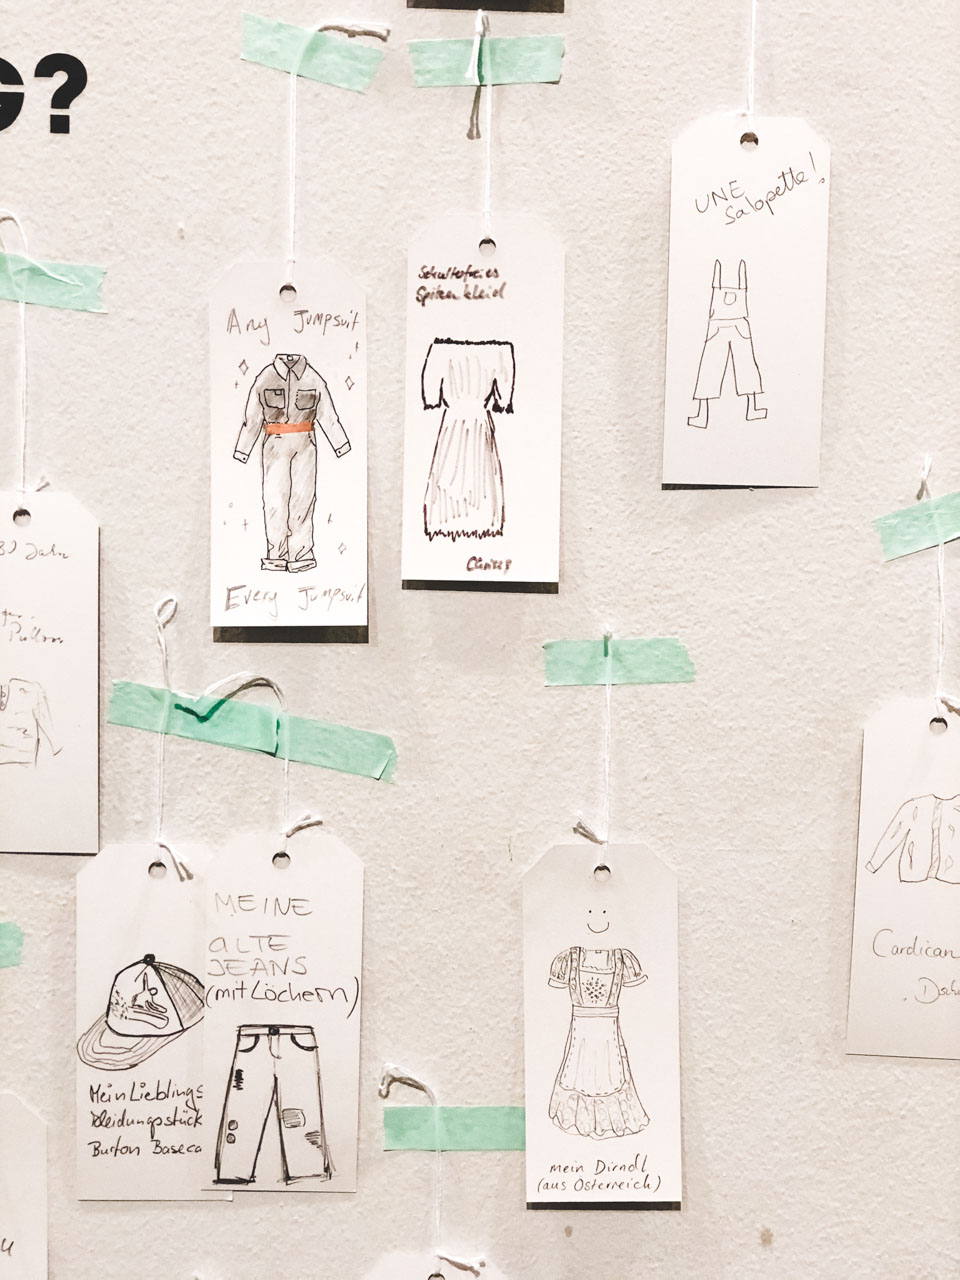 Several hangtags with garments drawn on them pinned to the wall